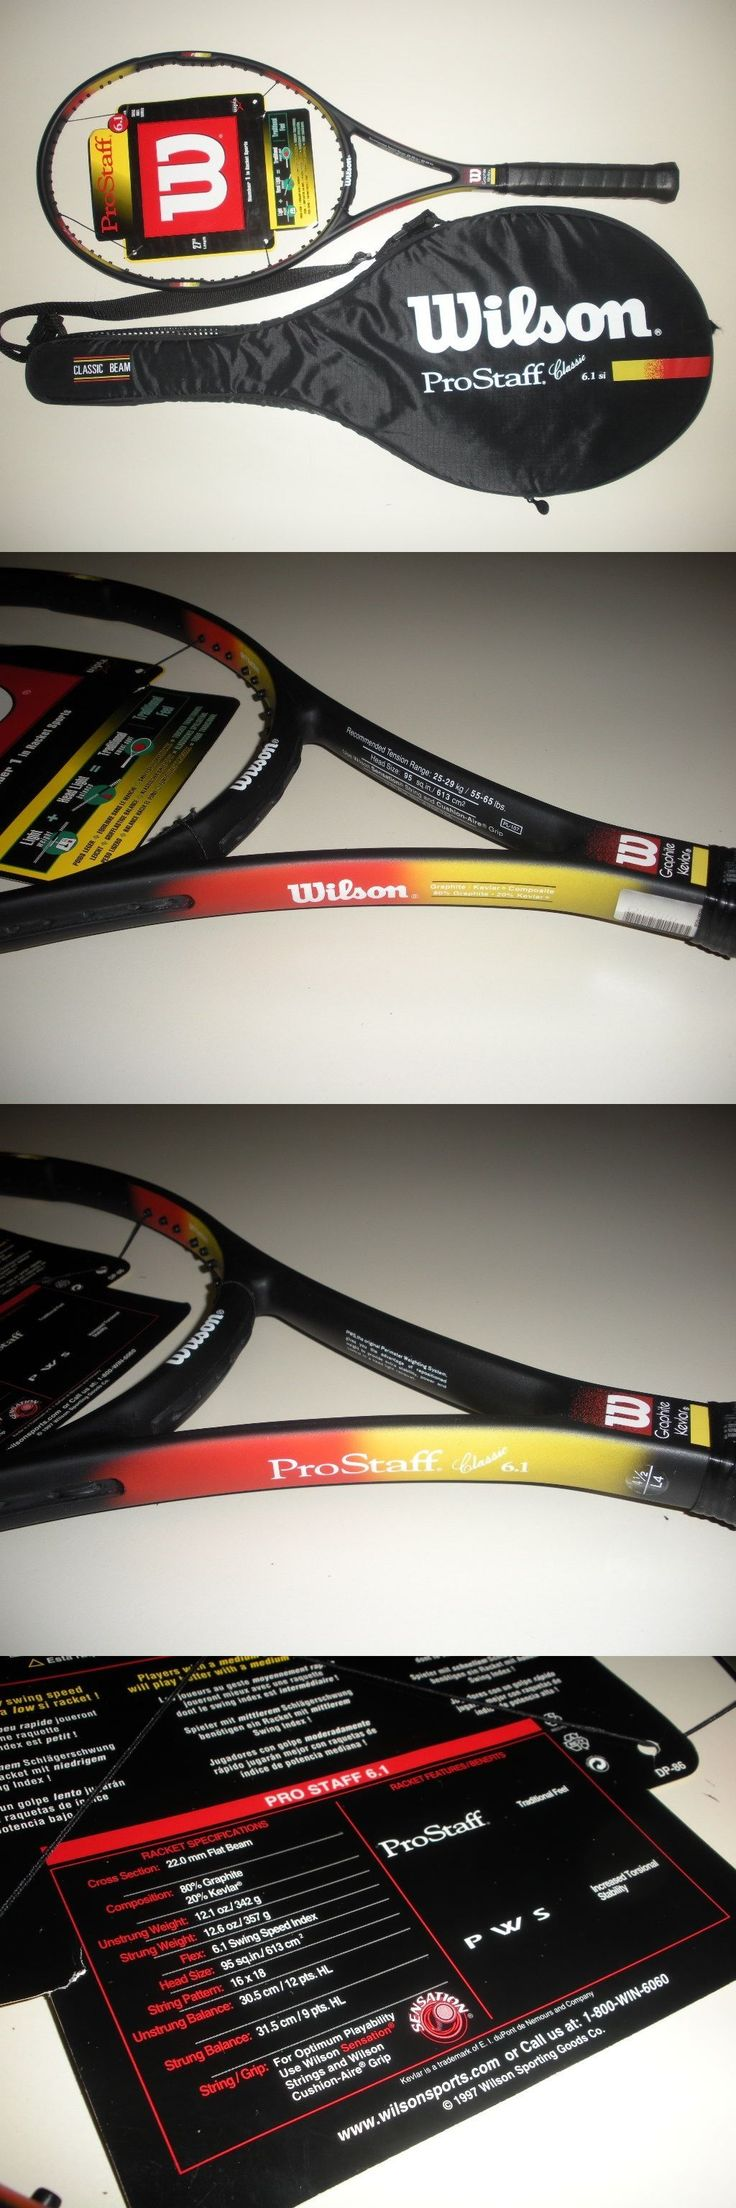 Racquets 20871: Wilson Pro Staff Classic 6.1 Mp 95 Tennis Racquet 4 1 2 Black Cap New -> BUY IT NOW ONLY: $199 on eBay!